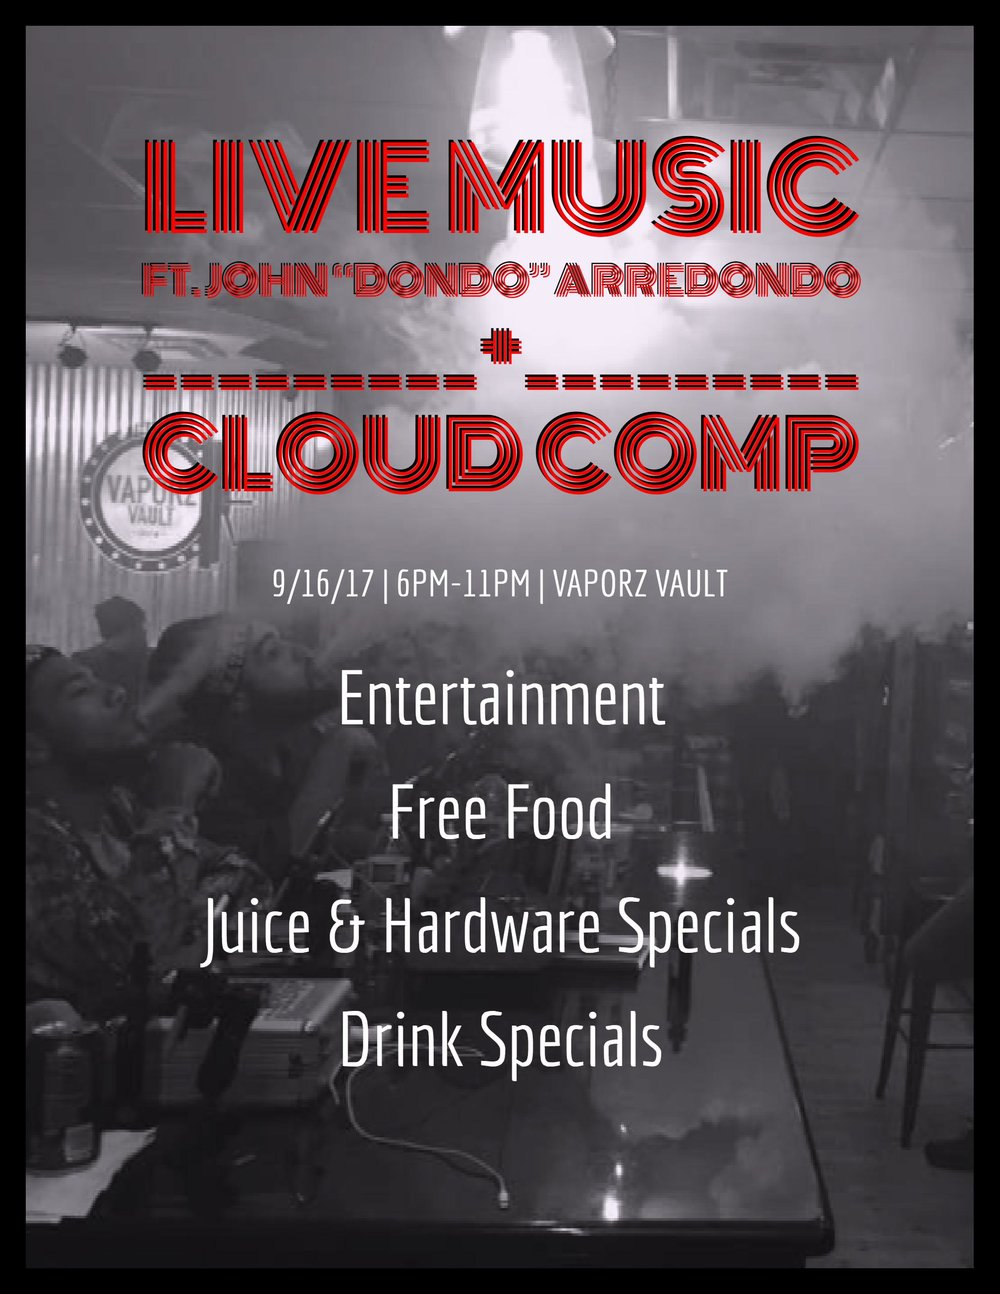 "It's party time! Come out Saturday, September 16th at 6pm for some great live music, deals on hardware and juice, some awesome drink specials, and lastly a cloud competition to end the night!  John ""DonDo"" Arrendondo will be rocking the night away from 6pm-9pm with his accoustic guitar!! After the music, we'll be having a cloud competition!   We hope to everyone there!!"